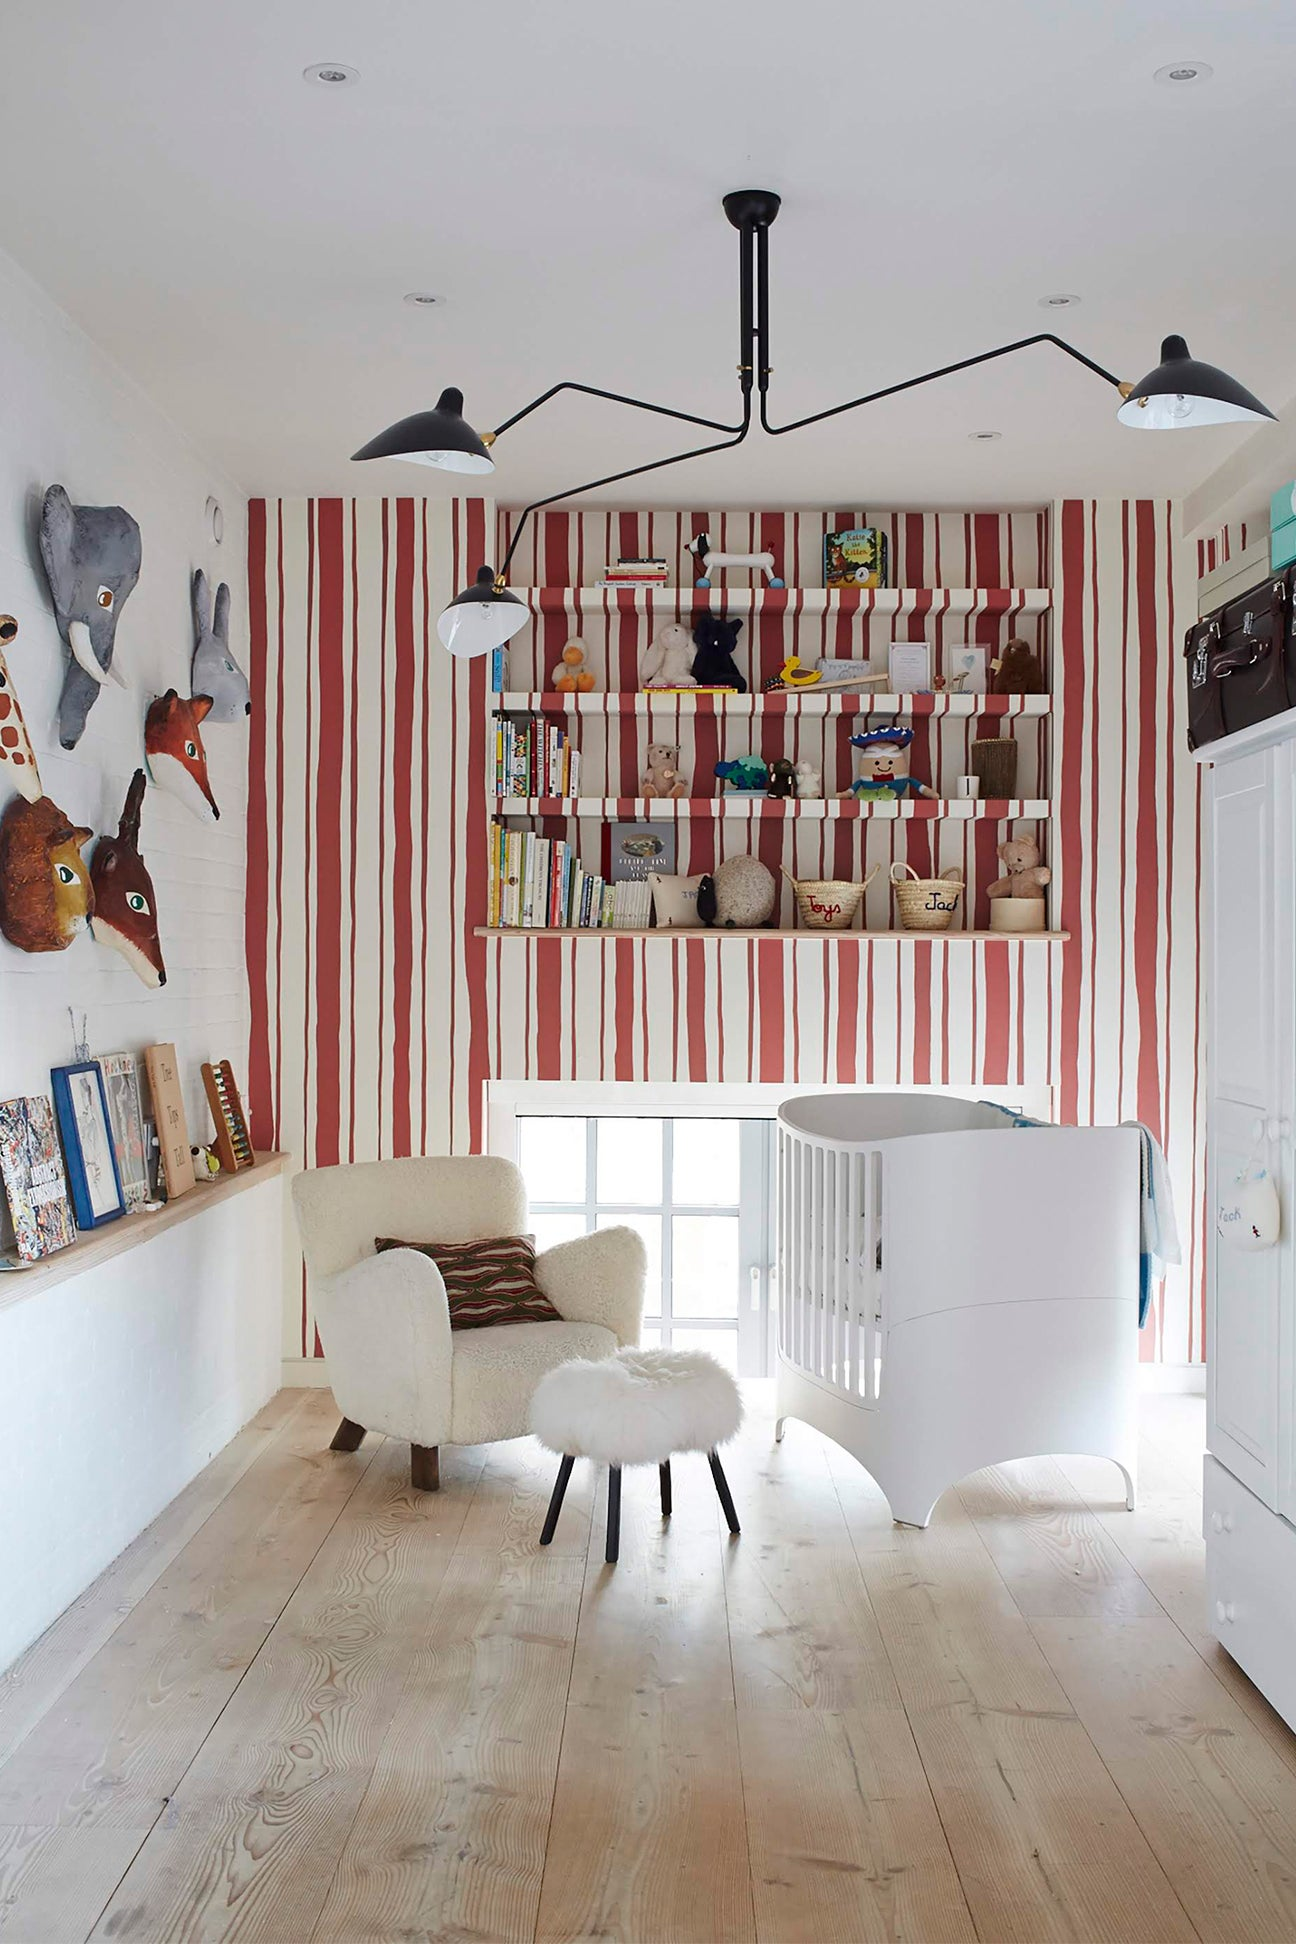 8 Kids Room Ideas Far Bigger Than The Spaces They Live In